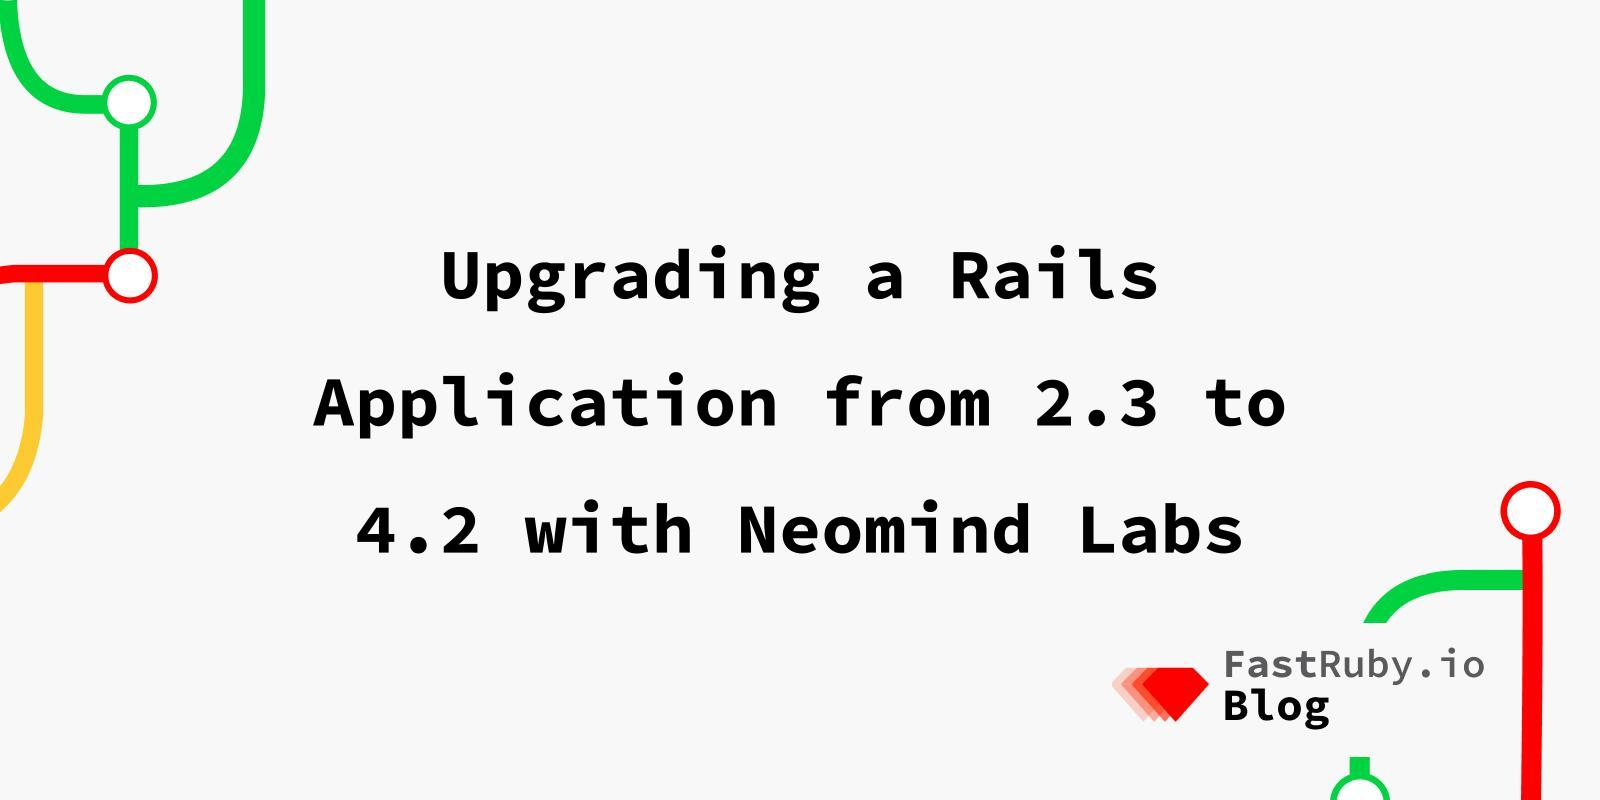 Upgrading a Rails Application from 2.3 to 4.2 with Neomind Labs